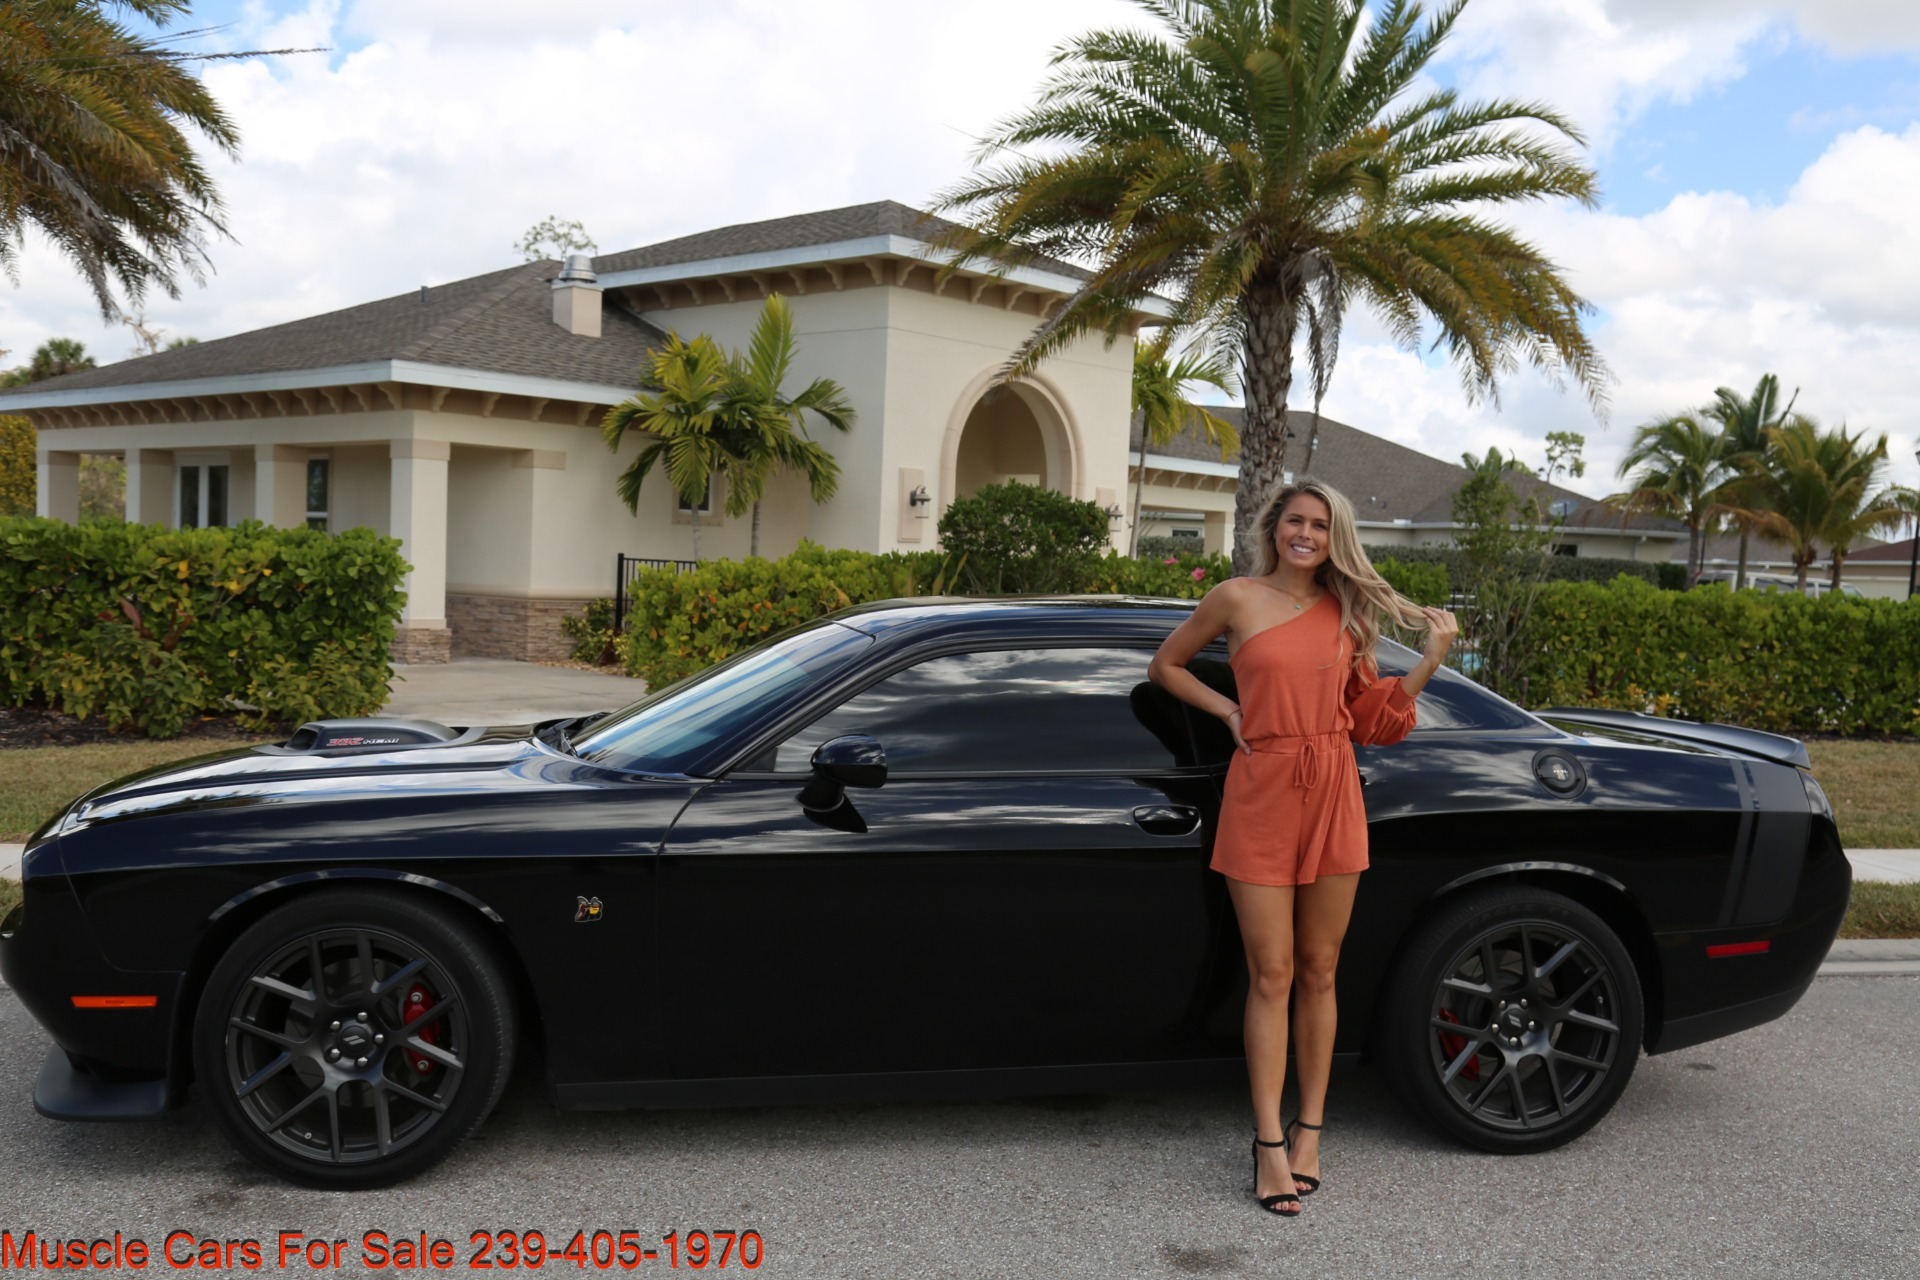 Used 2017 Dodge Challenger 392 HEMI Scat Pack Shaker for sale Sold at Muscle Cars for Sale Inc. in Fort Myers FL 33912 1